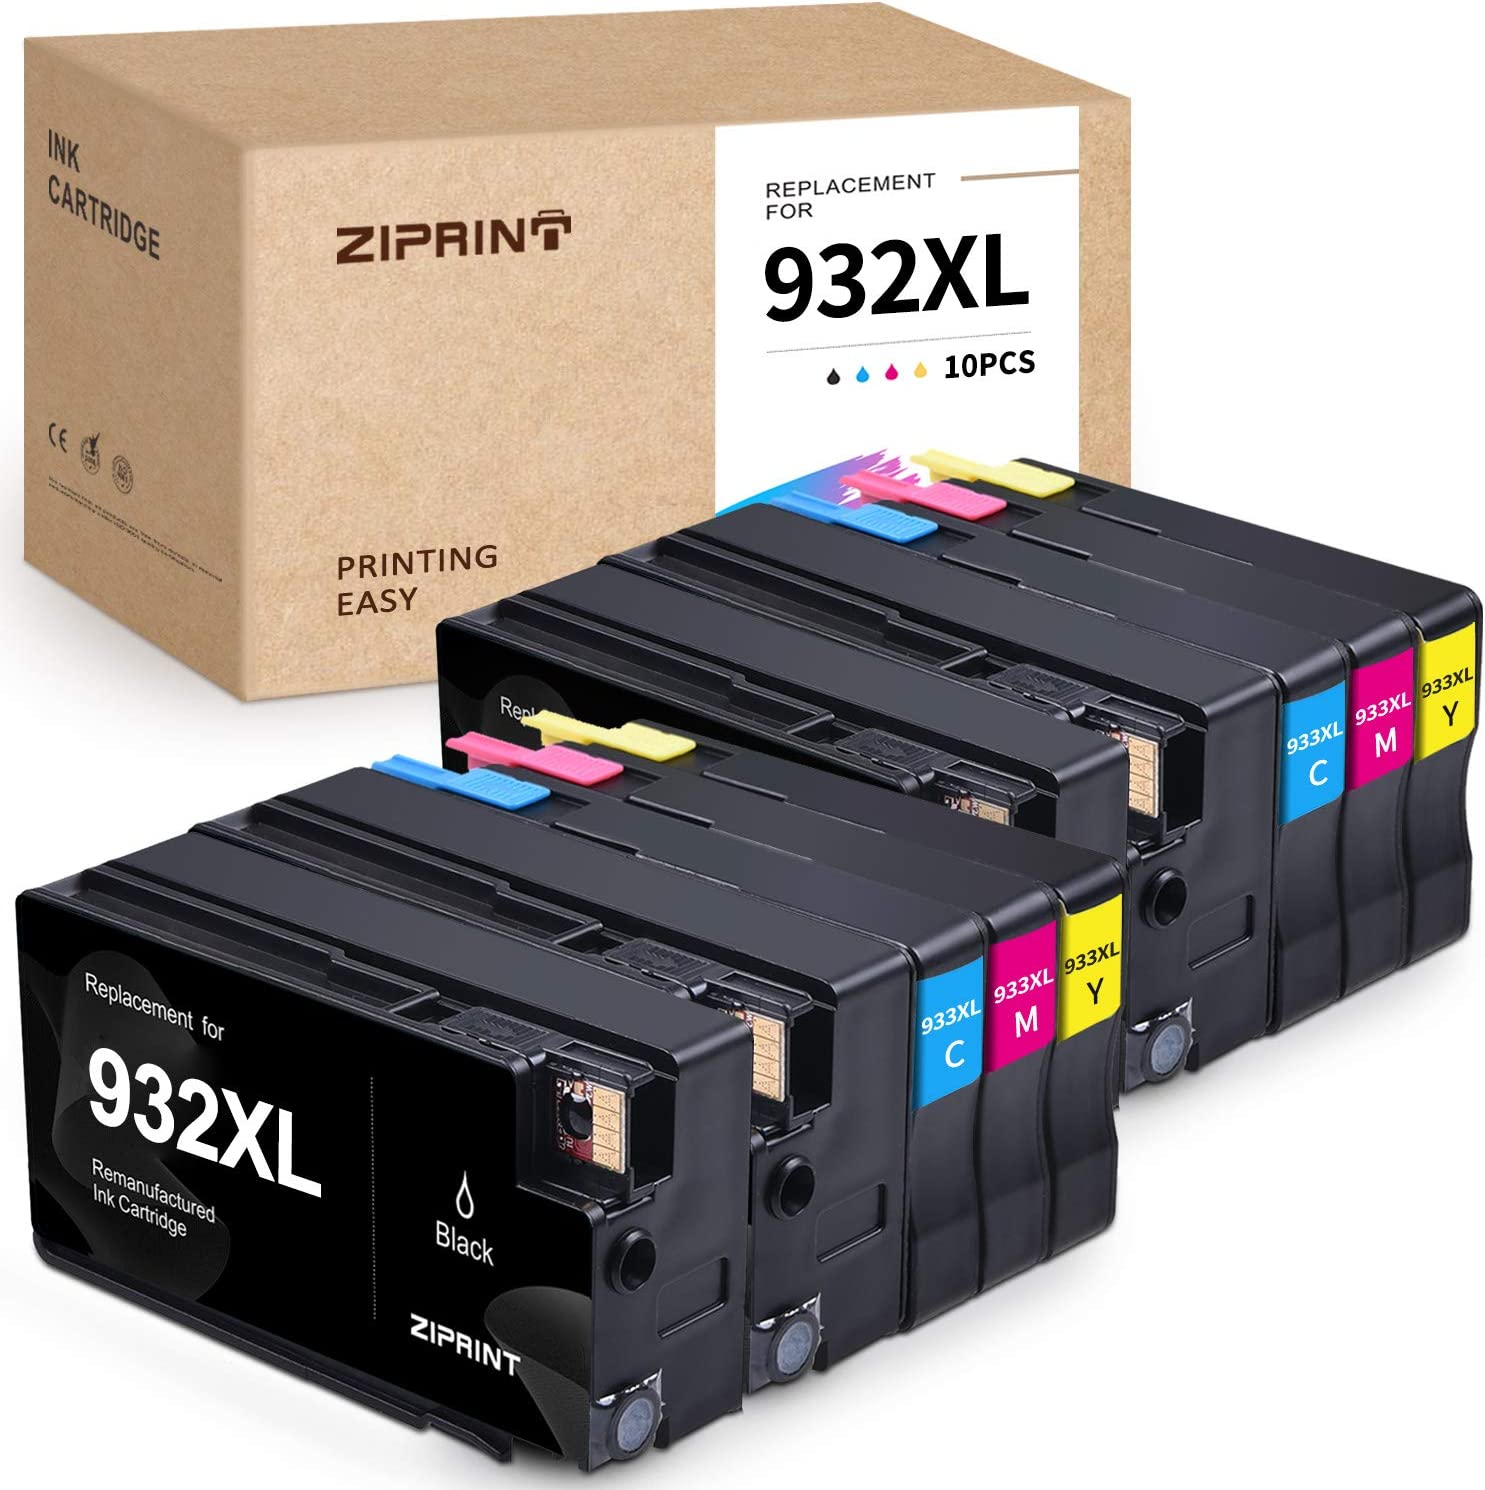 Ziprint Compatible Ink Cartridge Replacement for HP 932 933 XL 932XL 933XL for HP OfficeJet 6100 6600 6700 7110 7510 7610 7612 Printer (Black Cyan Magenta Yellow, 10-Pack)